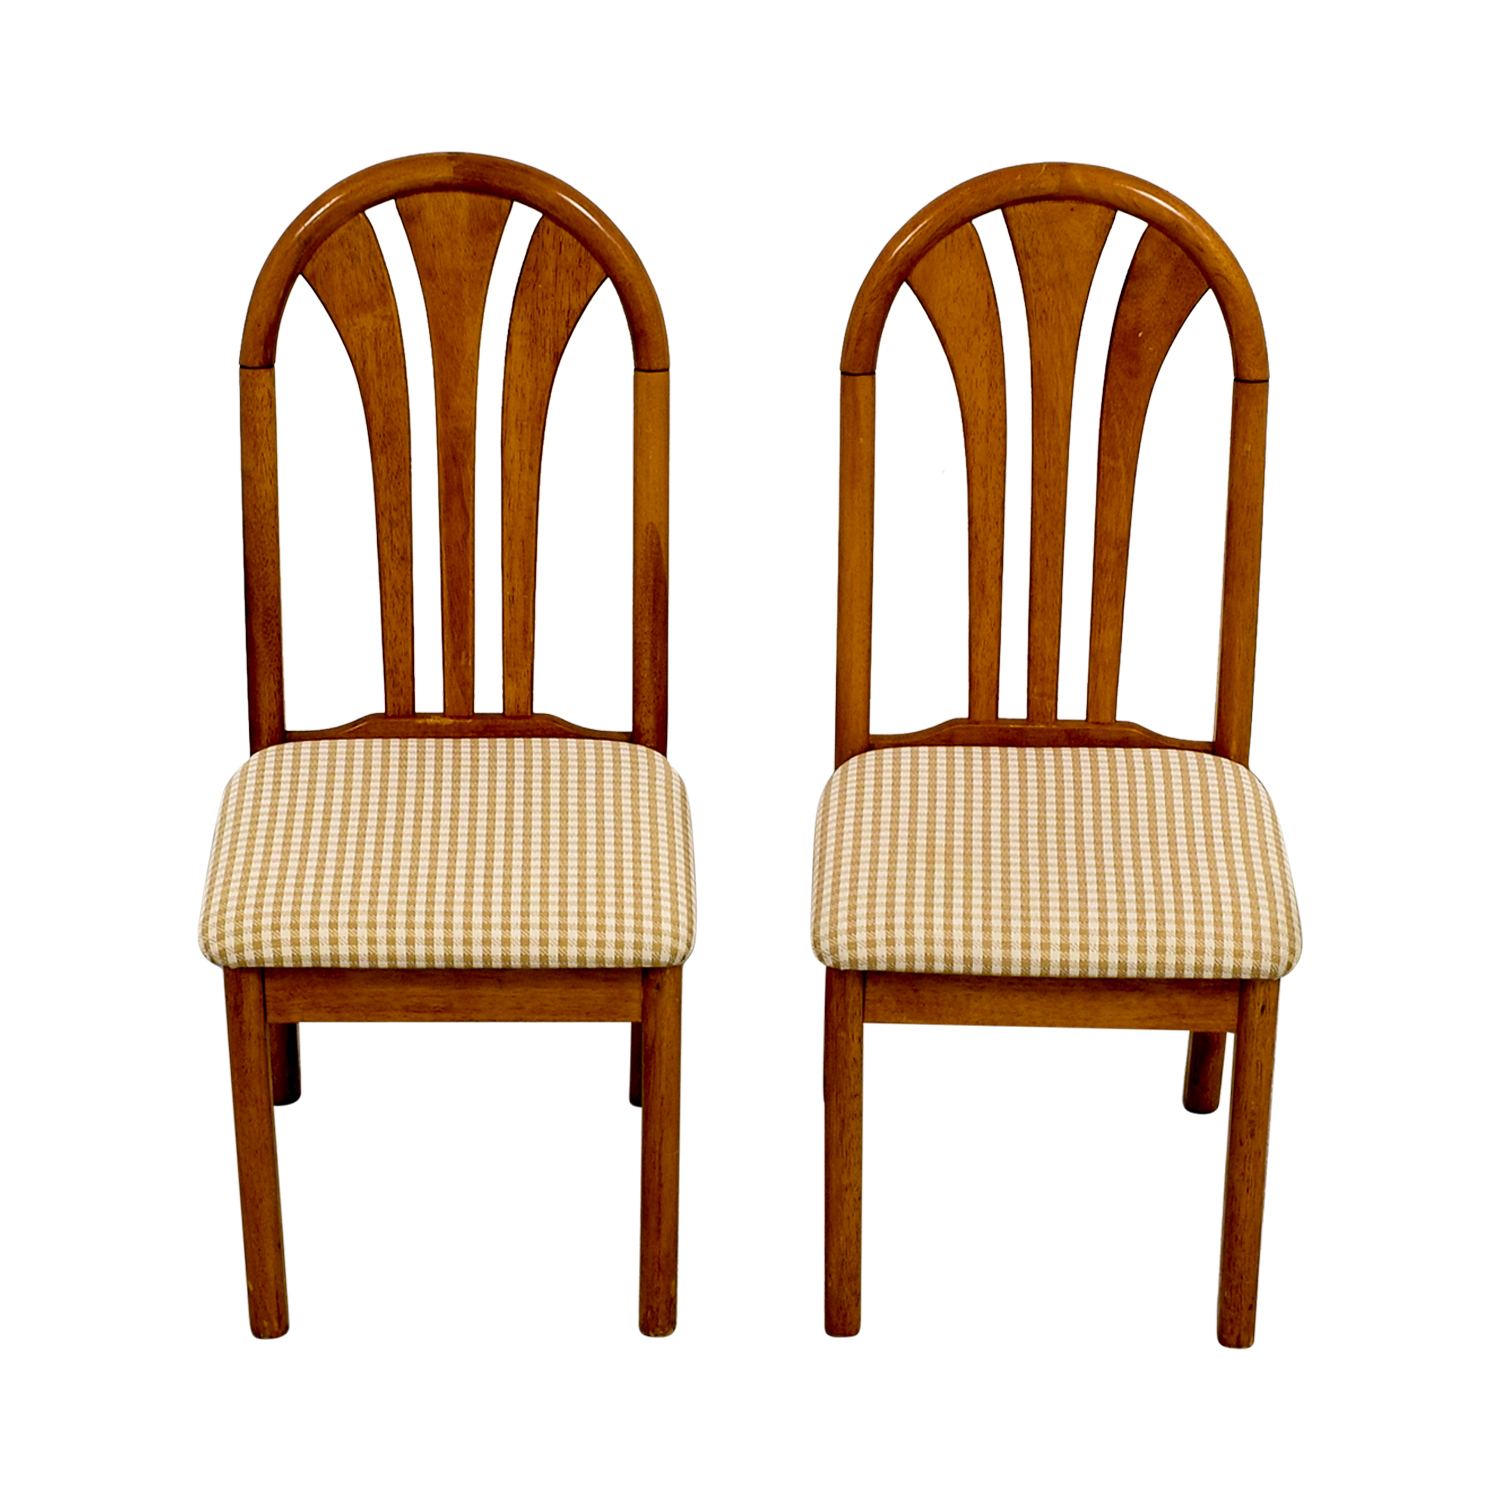 Gingham Upholstered Wood Chairs used